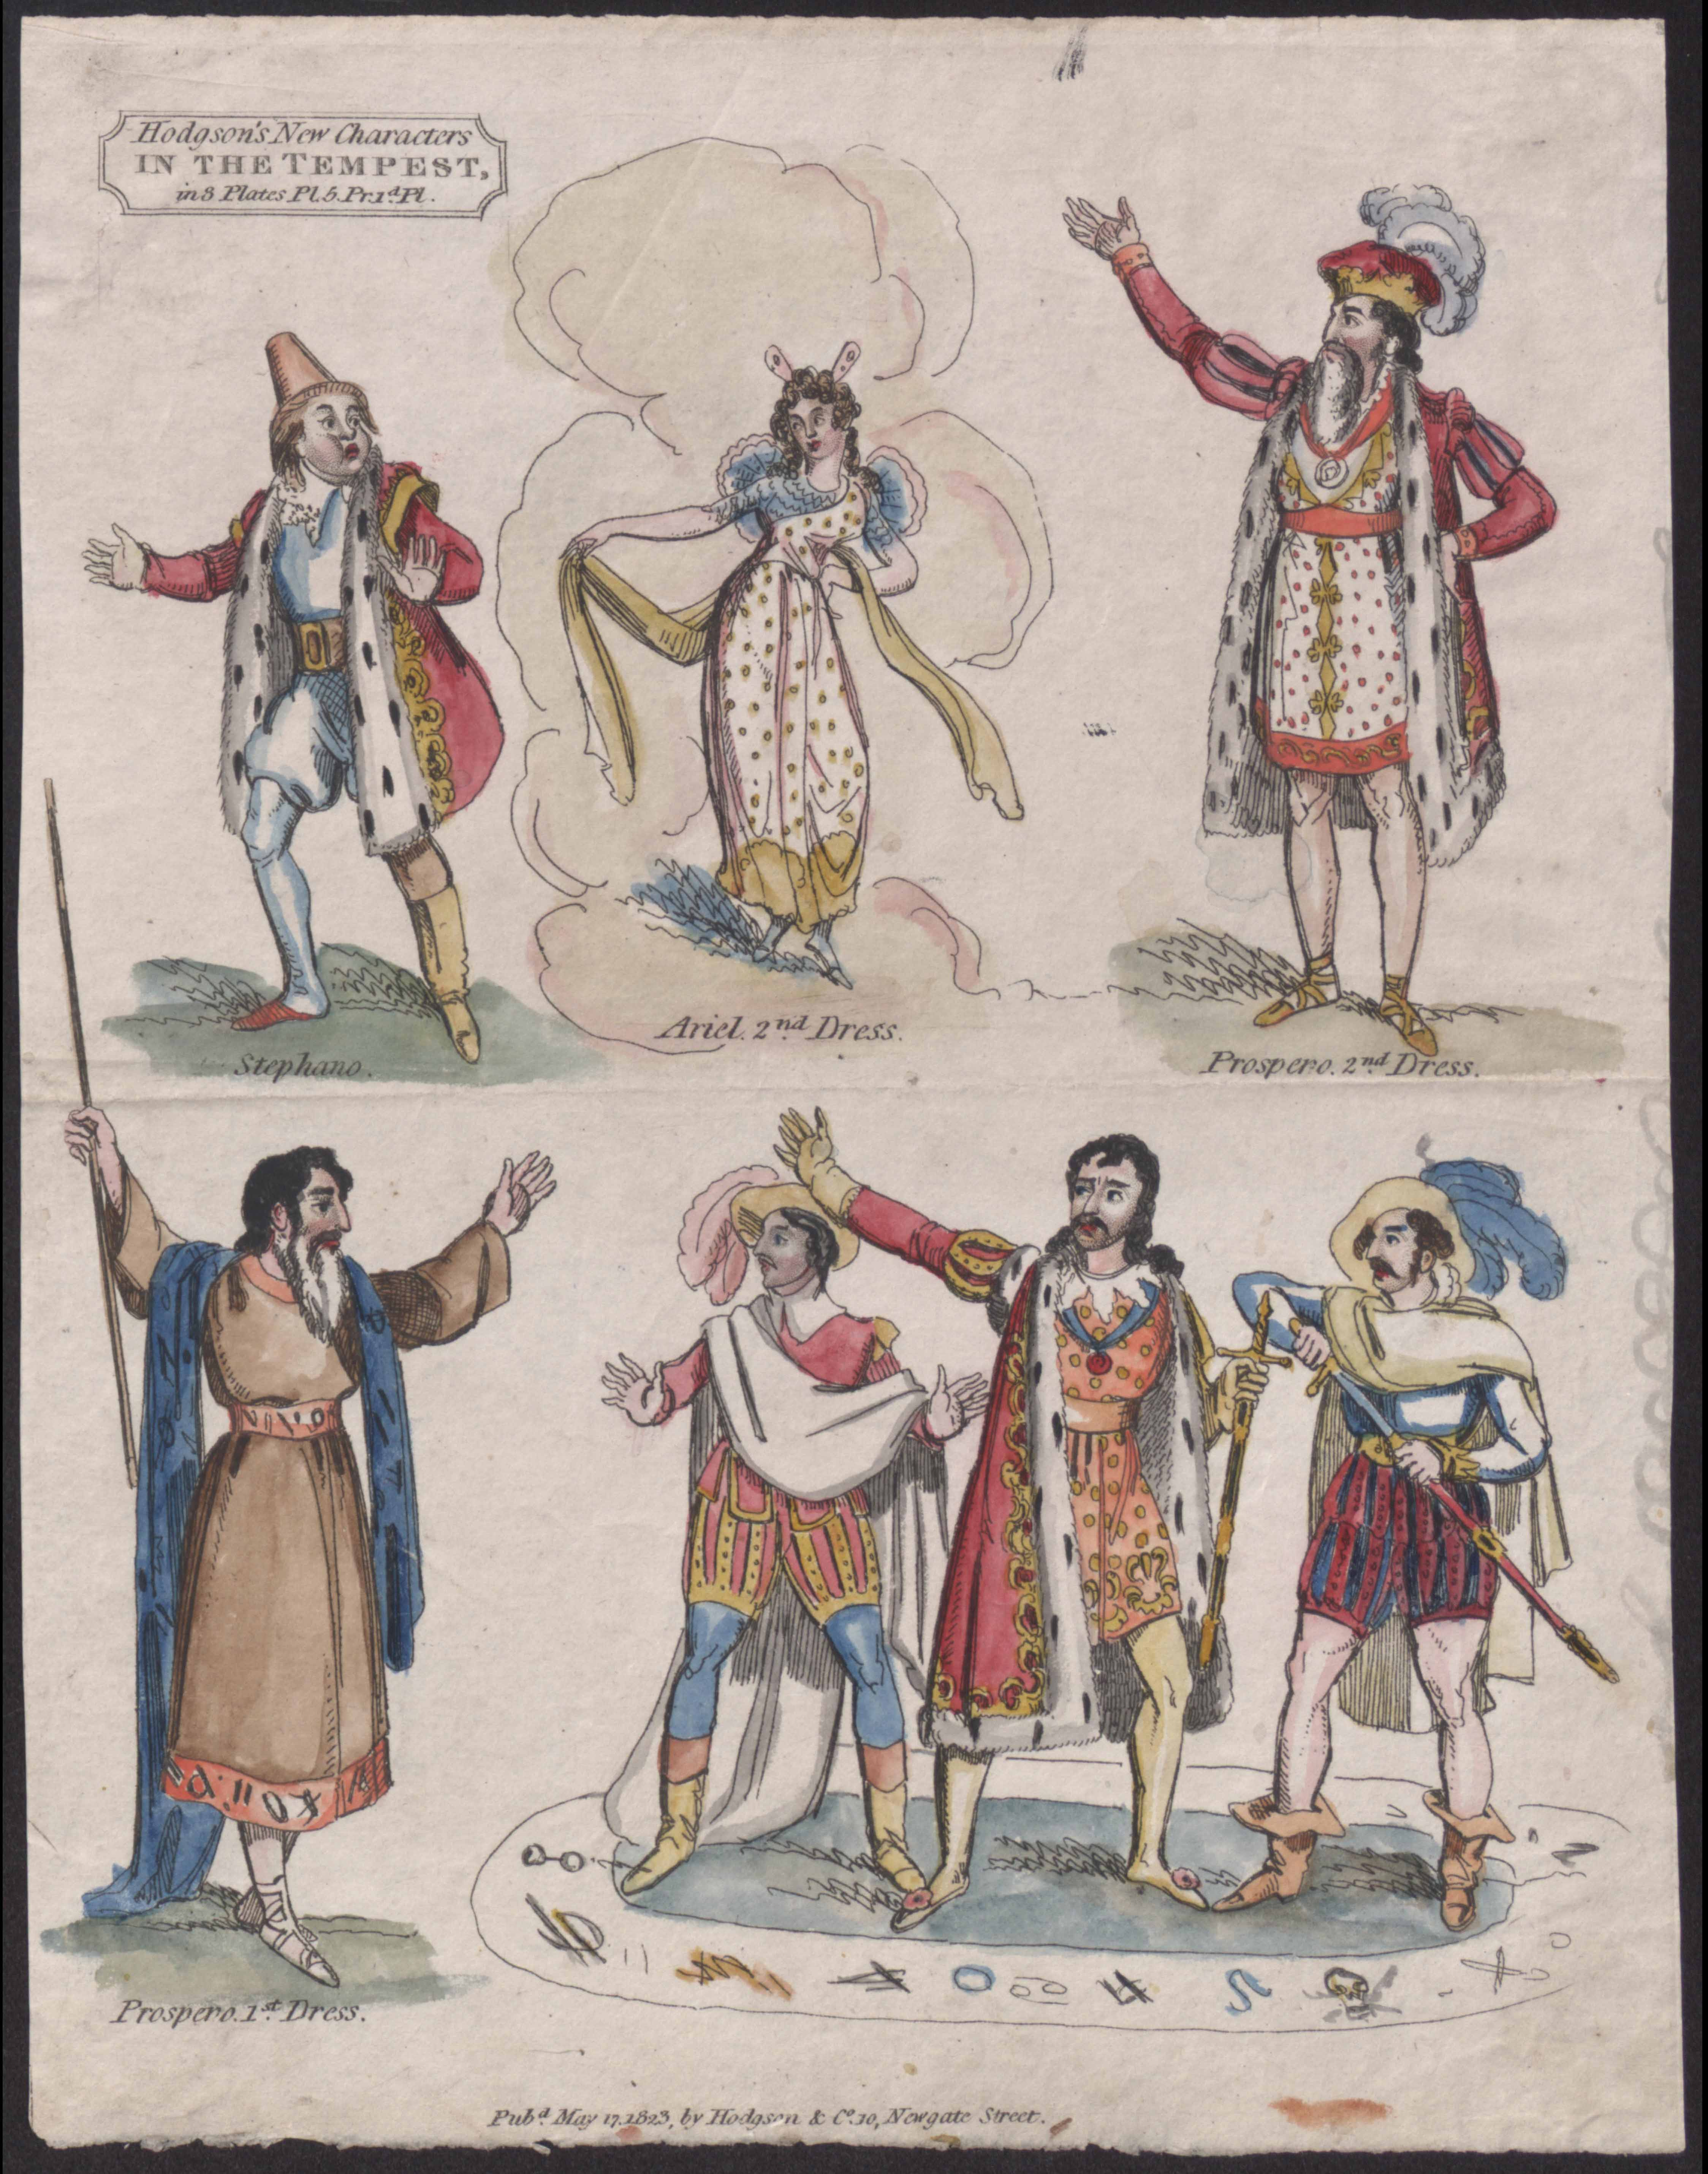 Hodgson's New Characters in The Tempest Miniature Theatre sheet, 1823